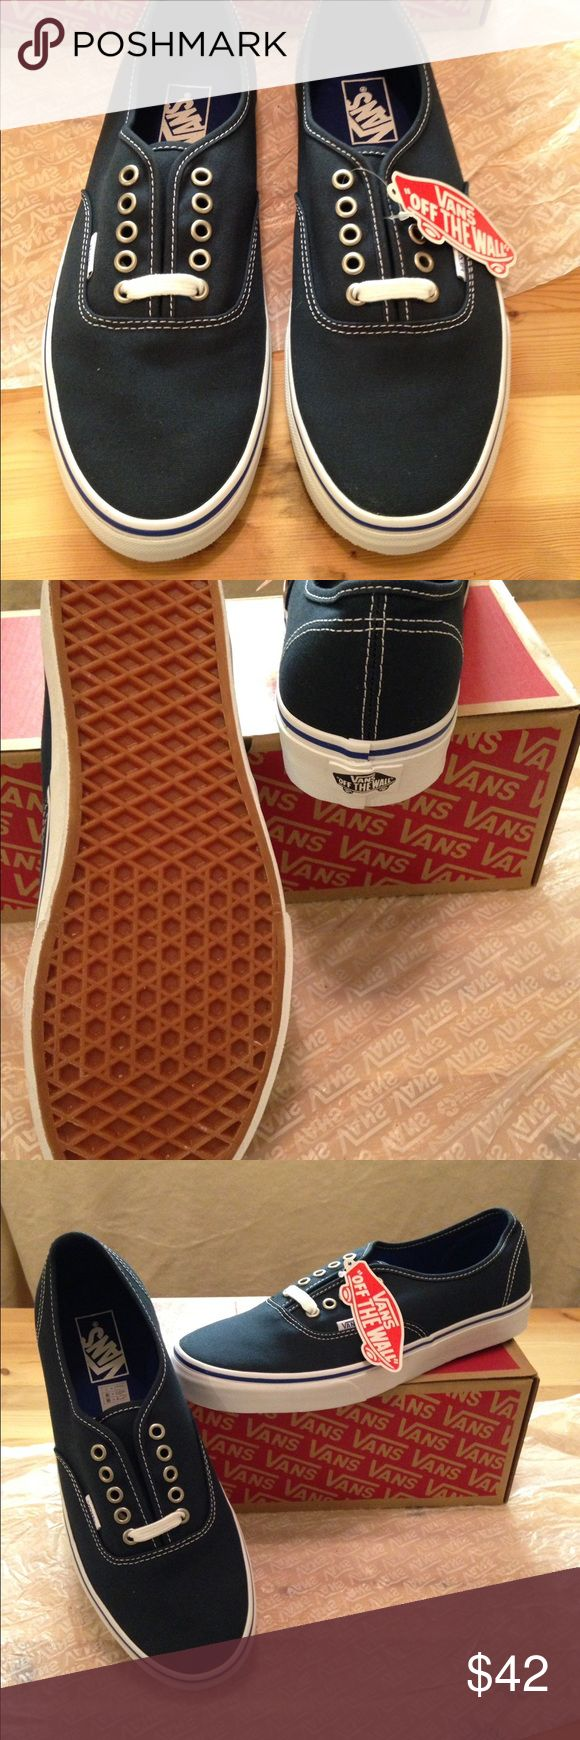 Navy Blue Vans M 9.5 W 11 New with tags never been worn! Blue Vans. Women size 11 Men size 9.5. Super cute with skinny jeans 👖❤️️😘 Vans Shoes Sneakers